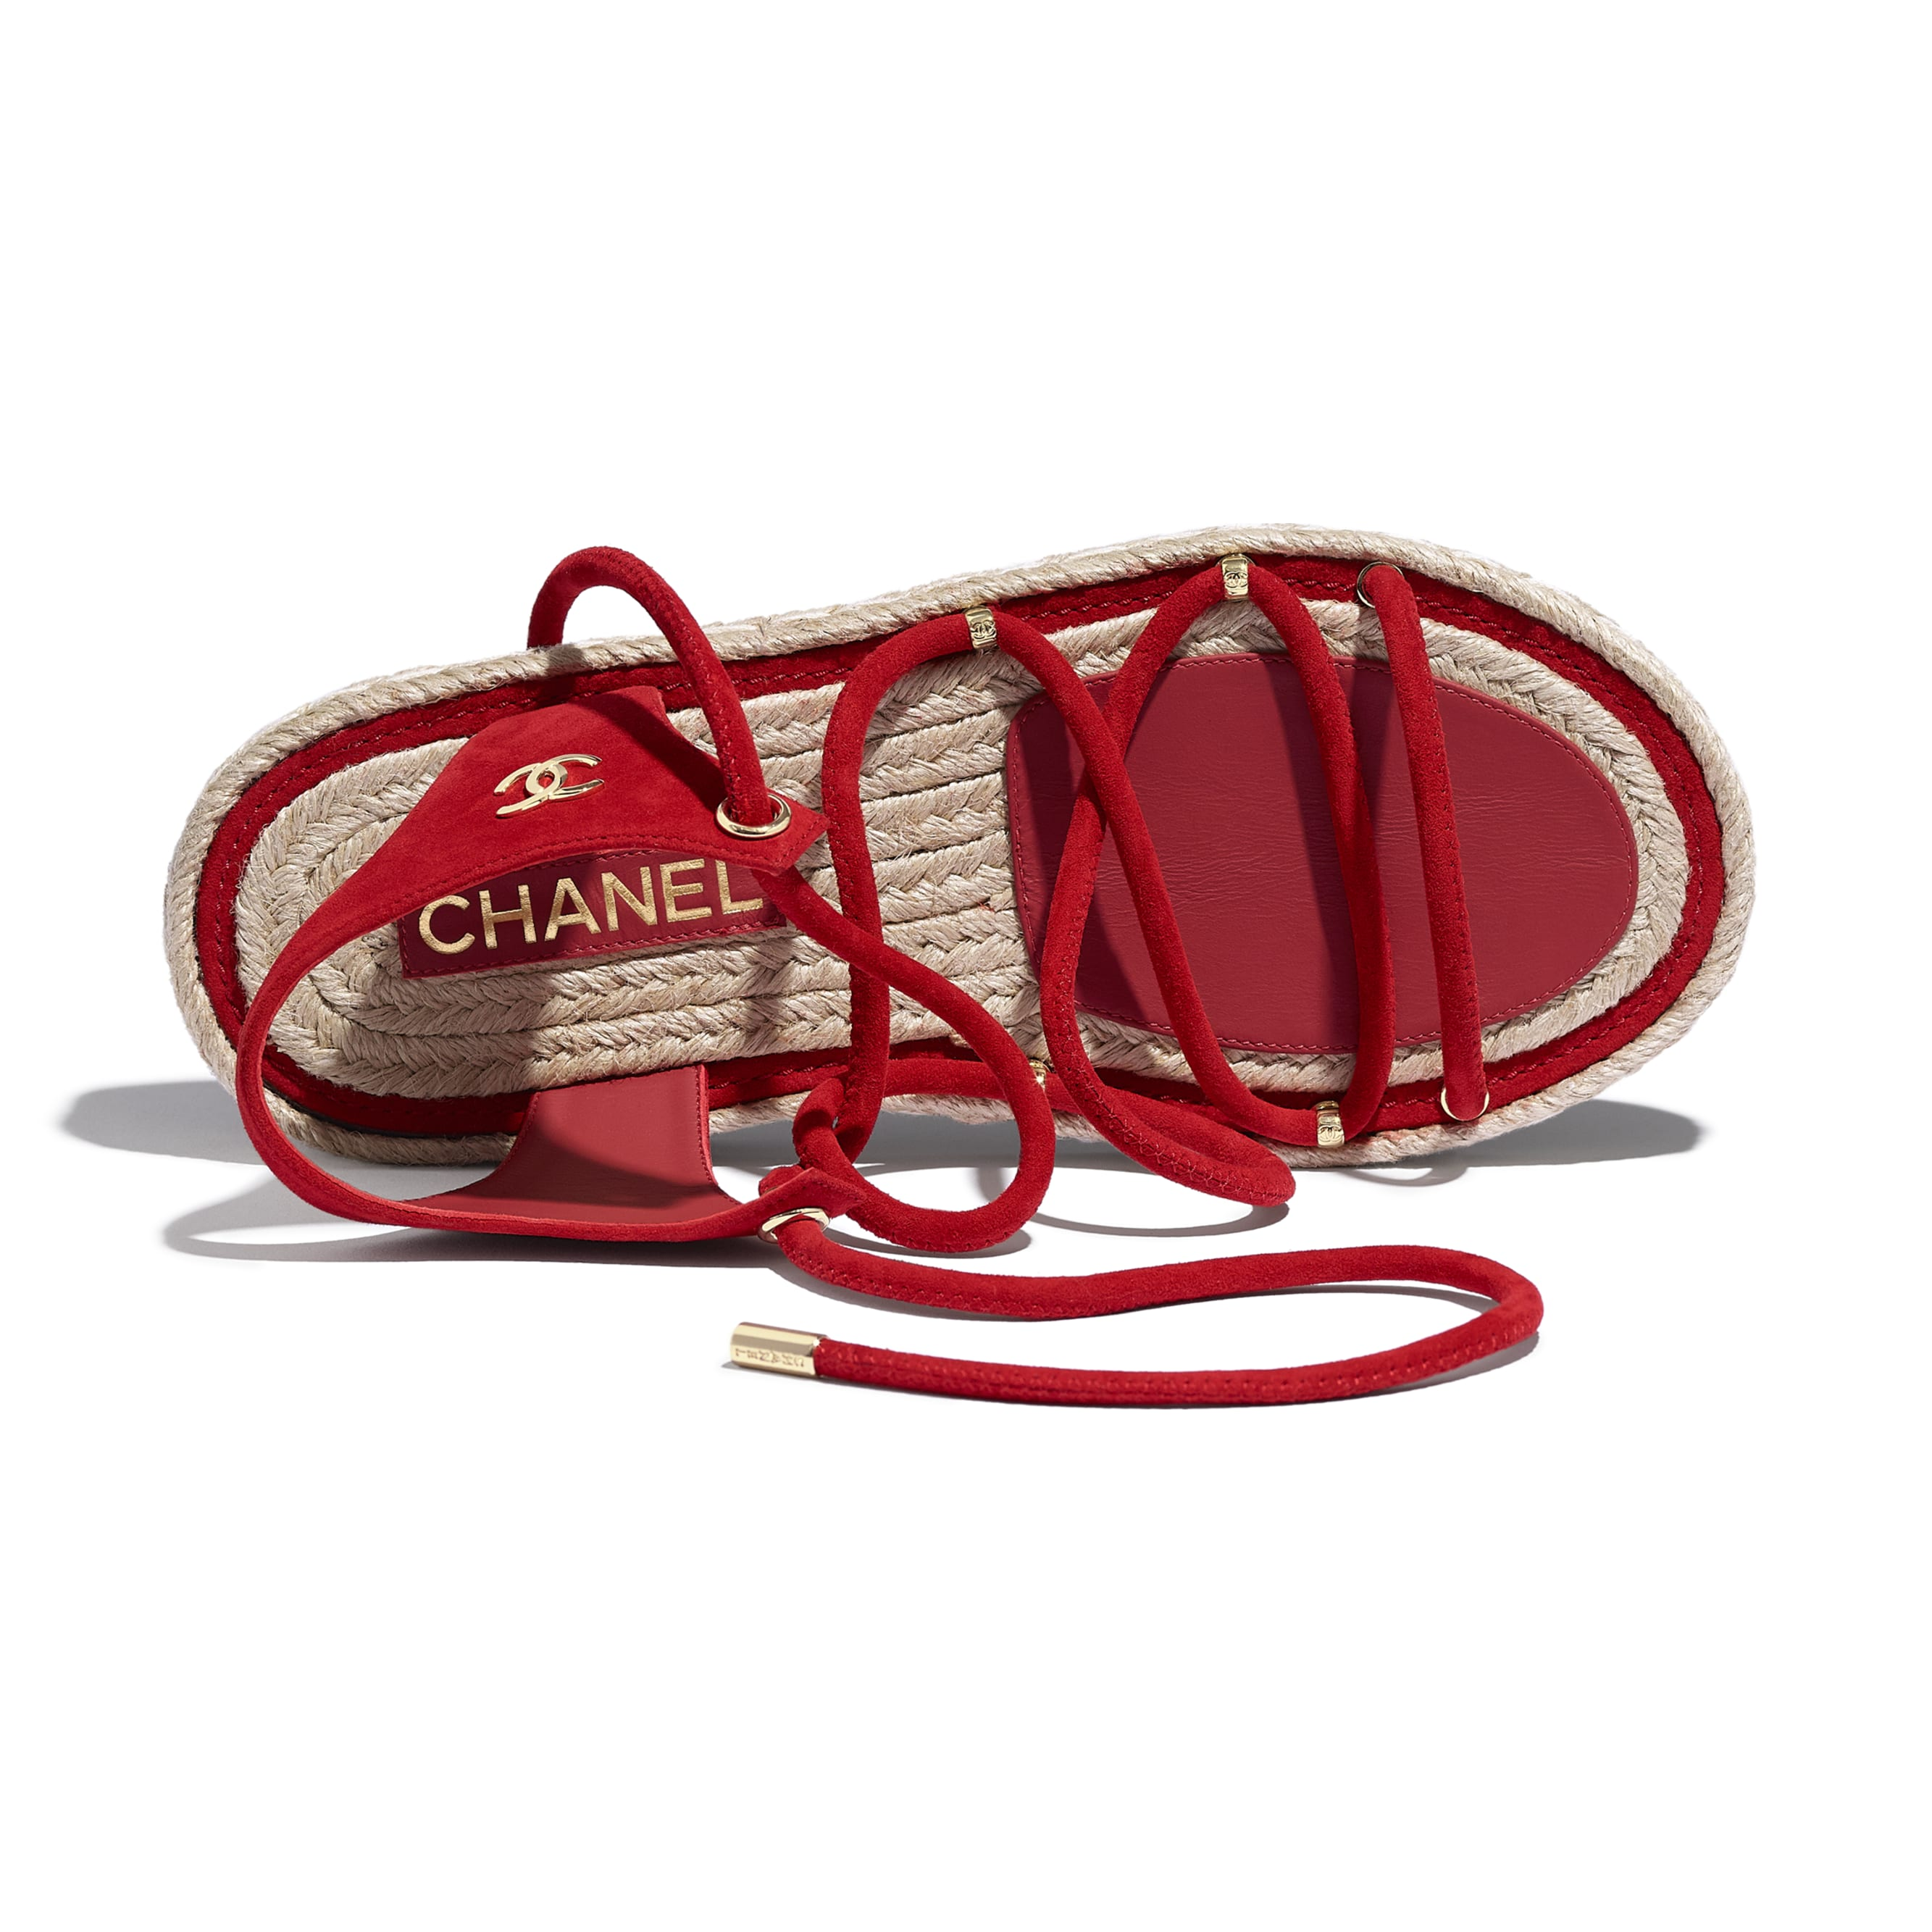 Sandals - Red - Suede Kidskin - CHANEL - Extra view - see standard sized version